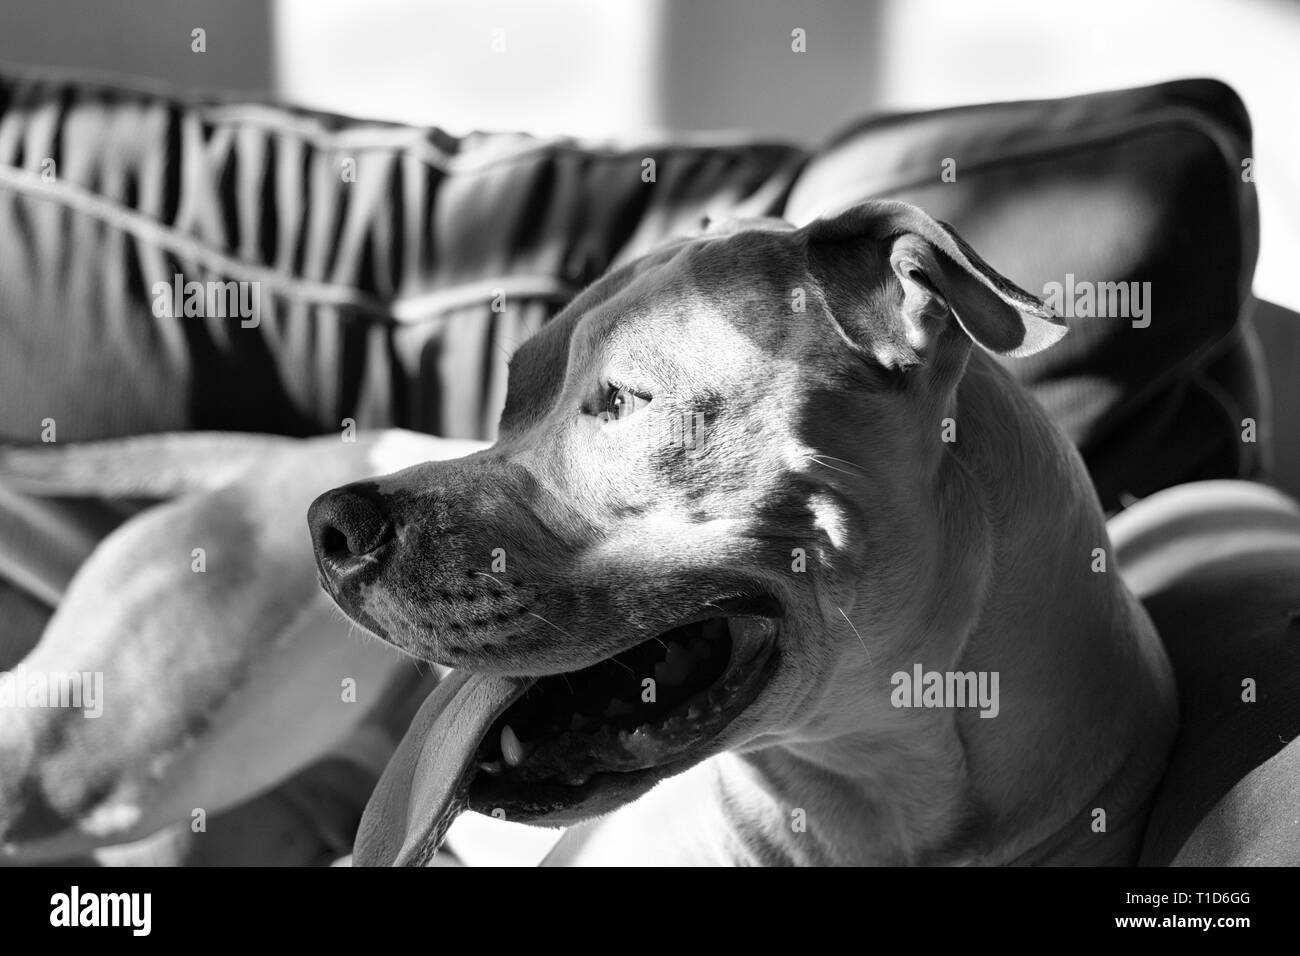 A mixed breed pit bull (Canis lupus familiaris)  sits on a couch in dappled shadows, his tongue lolling. - Stock Image